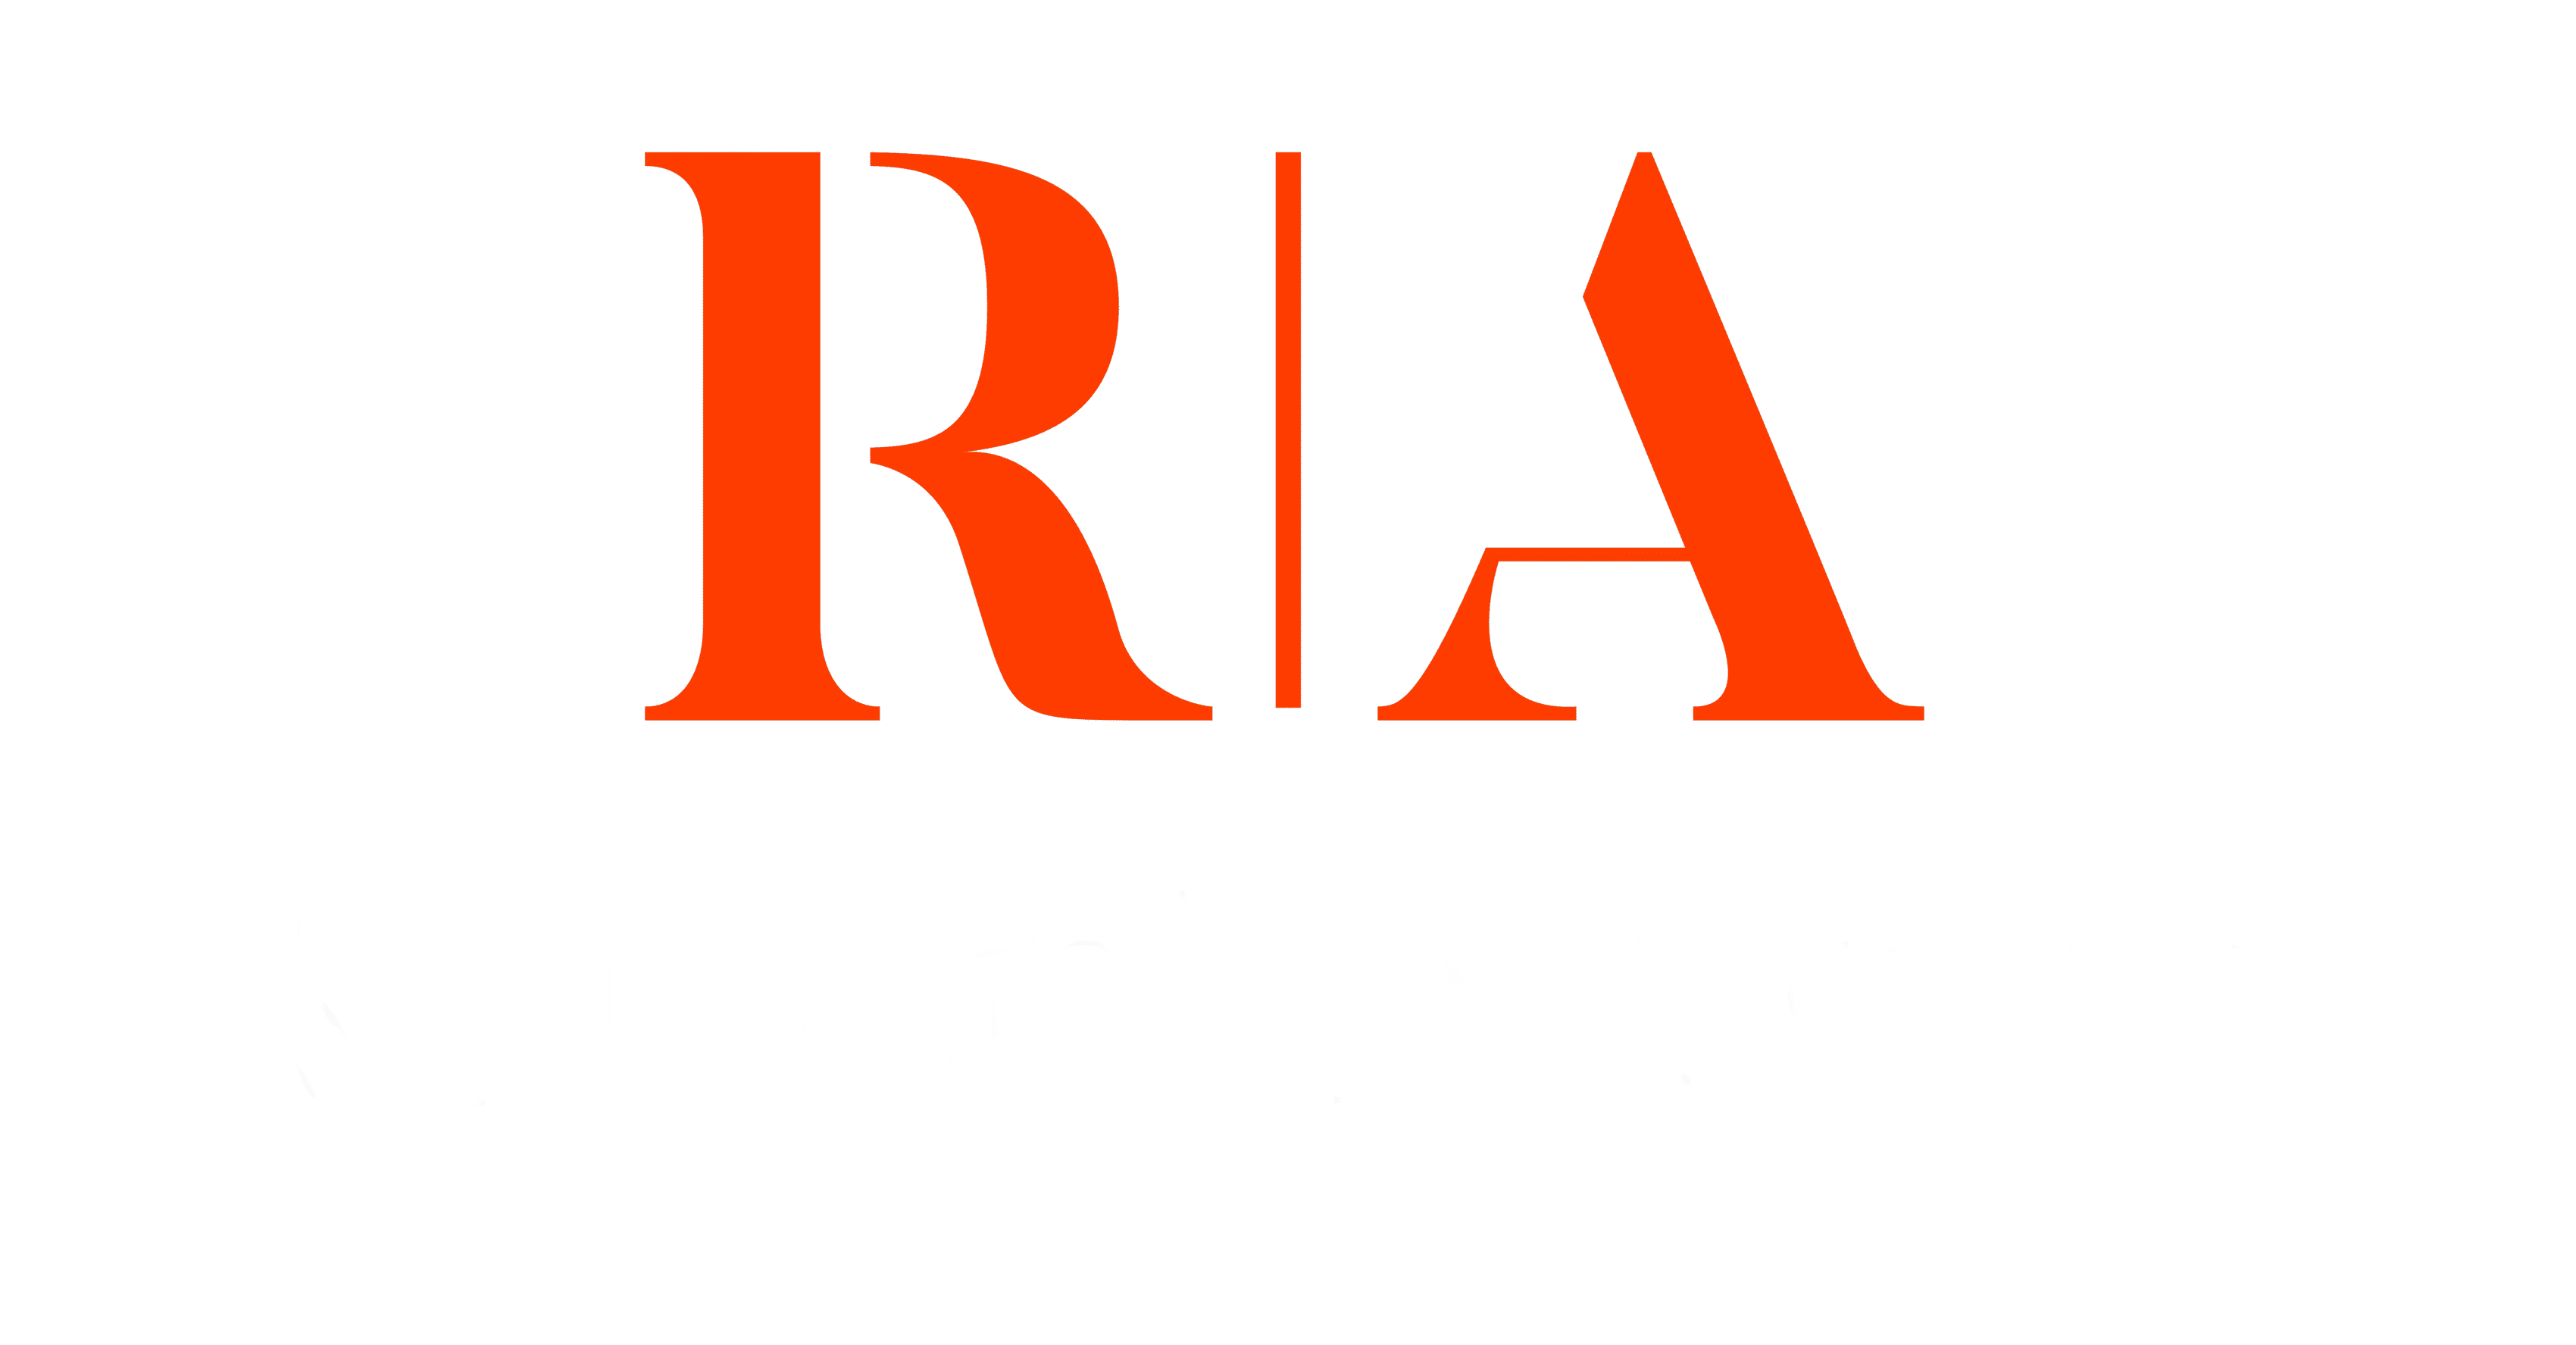 Robert August Apparel